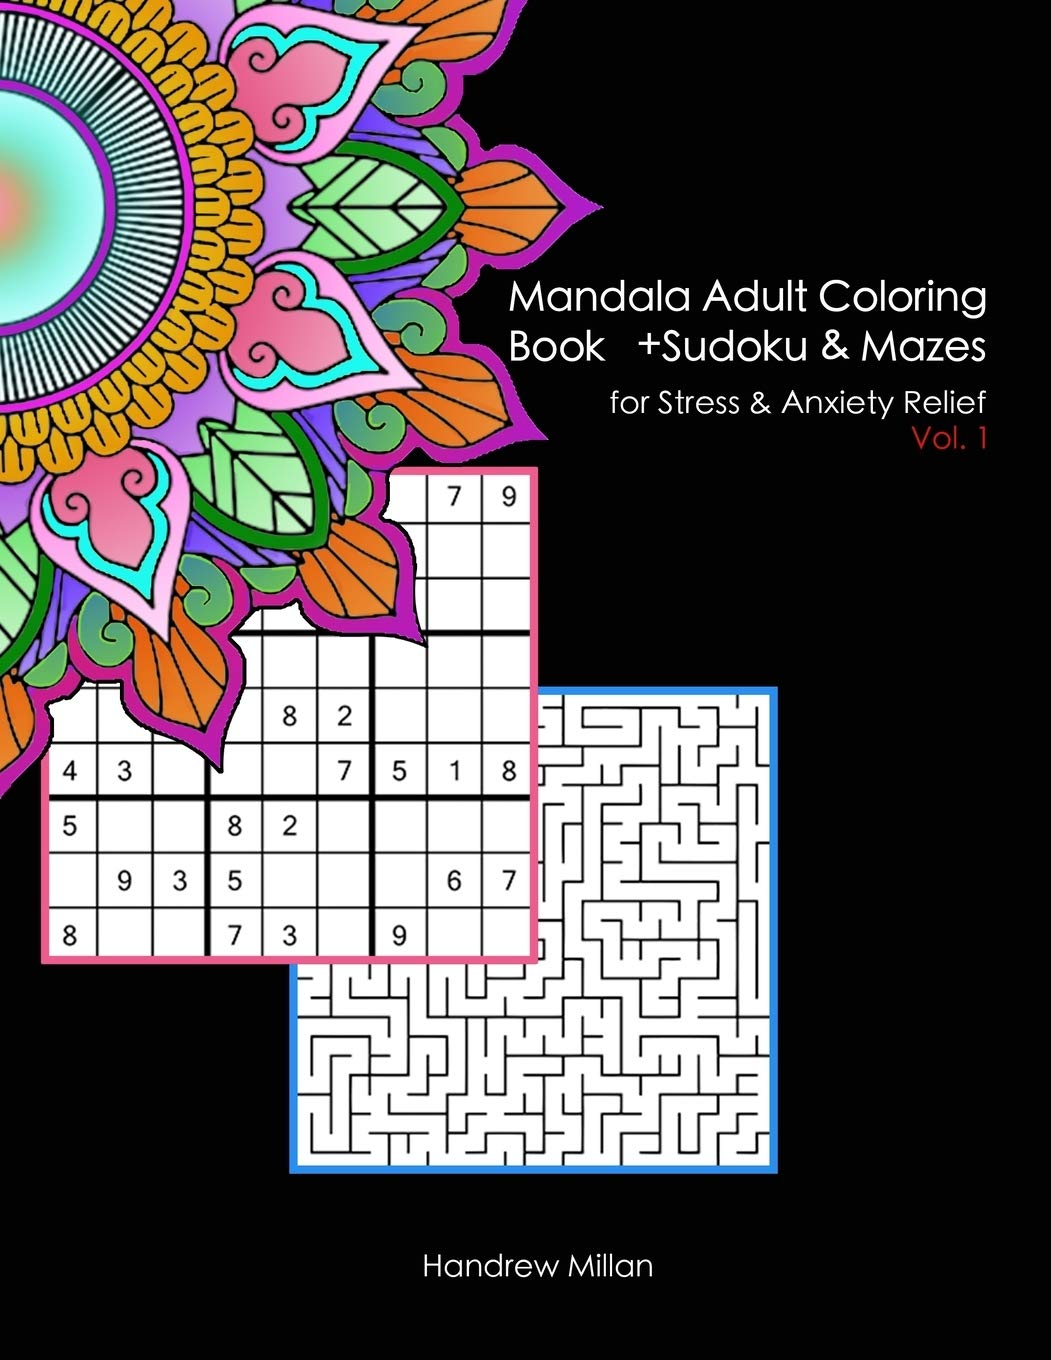 Amazon Com Mandala Adult Coloring Book Plus Sudoku And Mazes For Stress And Anxiety Relief An Activity Book With 25 Mandala Coloring Pages 25 Sudoku And 25 Stress And Anxiety Relief Volume